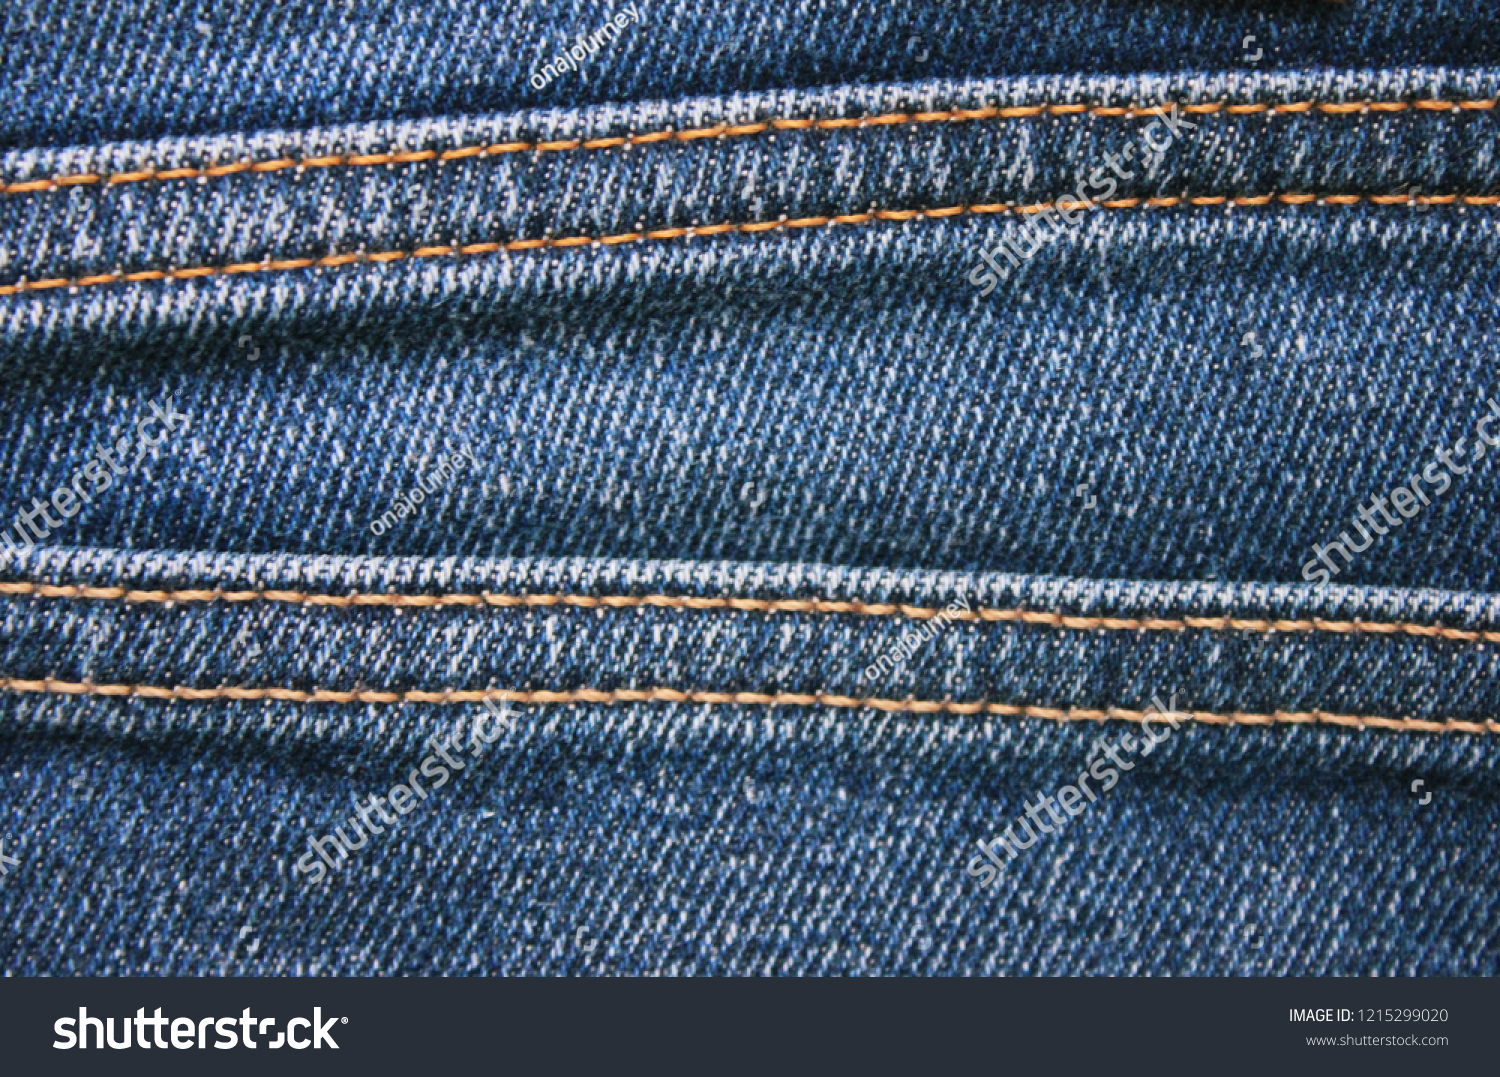 a1669d24774 Blue Jeans Detail with Seam Close Up View. Classic Fashion Denim Blue Jeans  Texture with